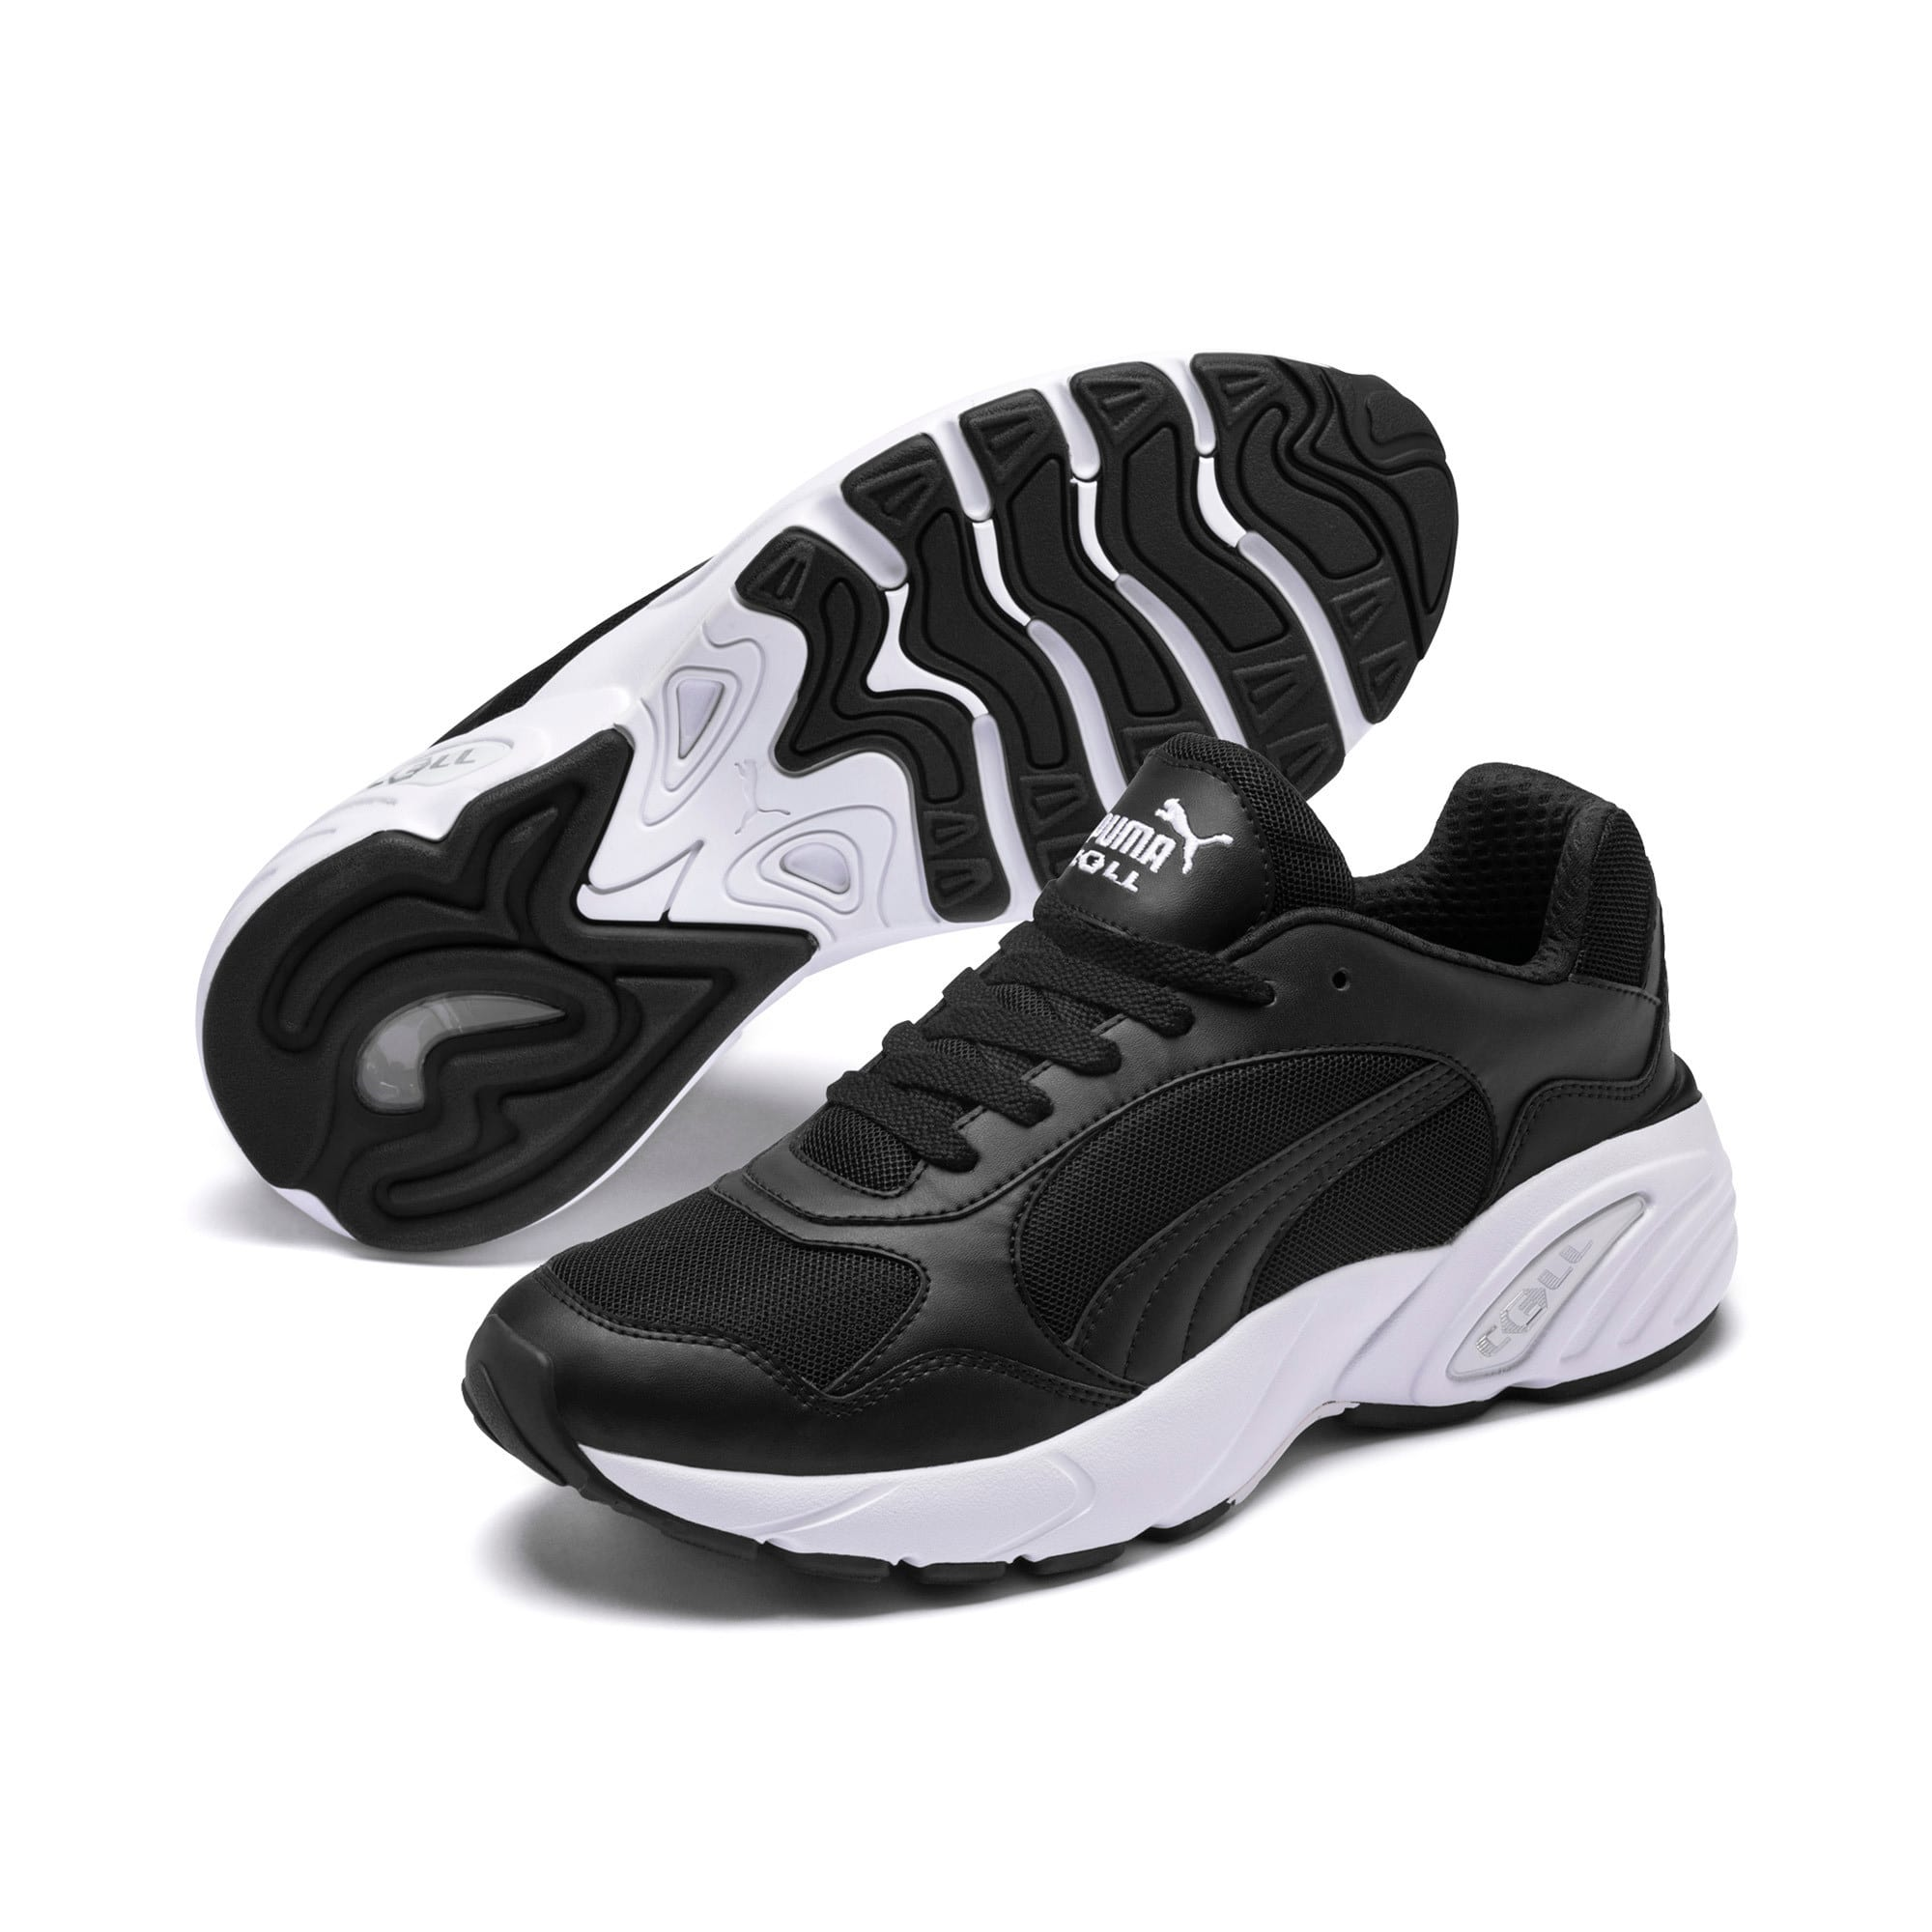 Thumbnail 2 of CELL Viper Trainers, Puma Black-Puma White, medium